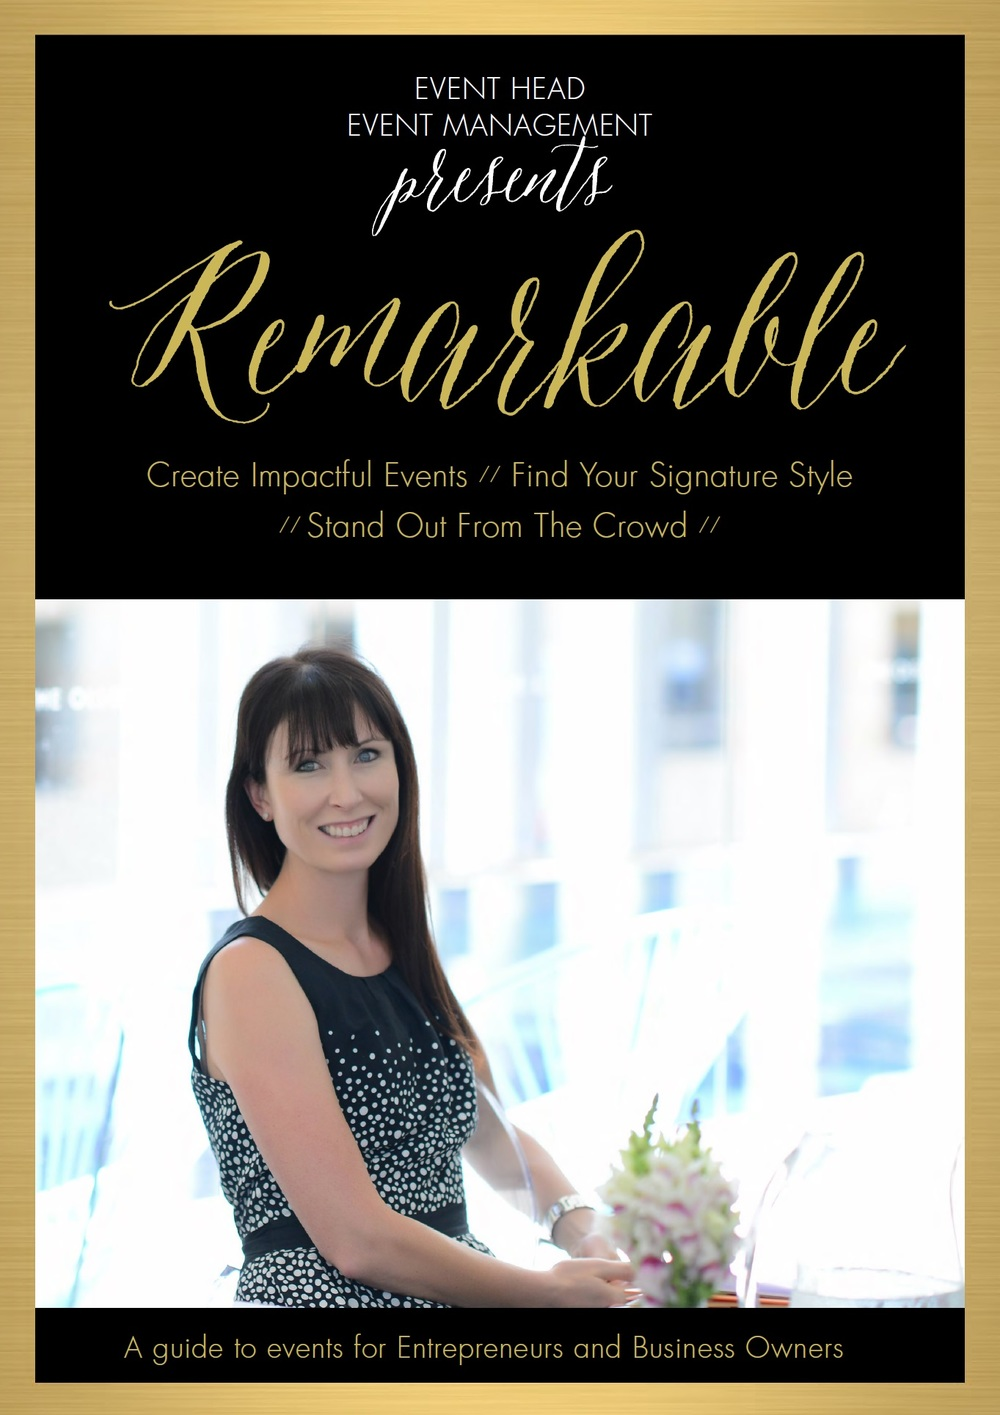 Remarkable free eguide Event Head